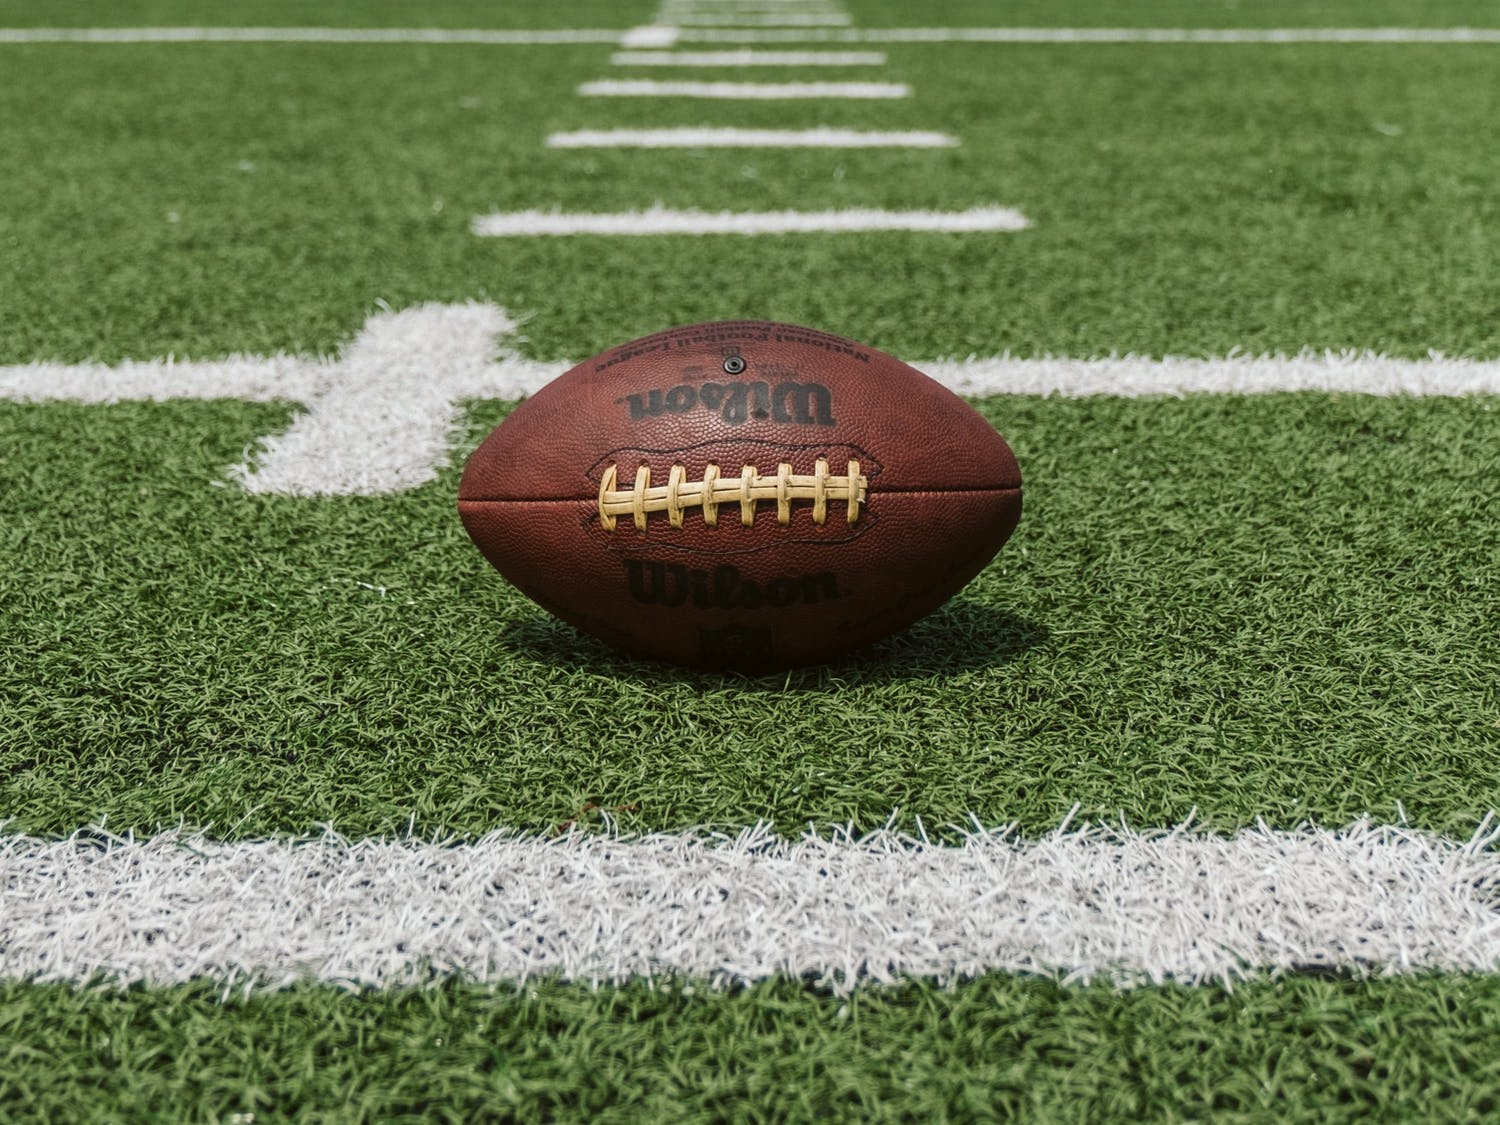 Ranging from hilarious to heartbreaking, Super Bowl ads came in an array of genres, as companies did their best to make a lasting impression on the 96.4 million people watching the Big Game.